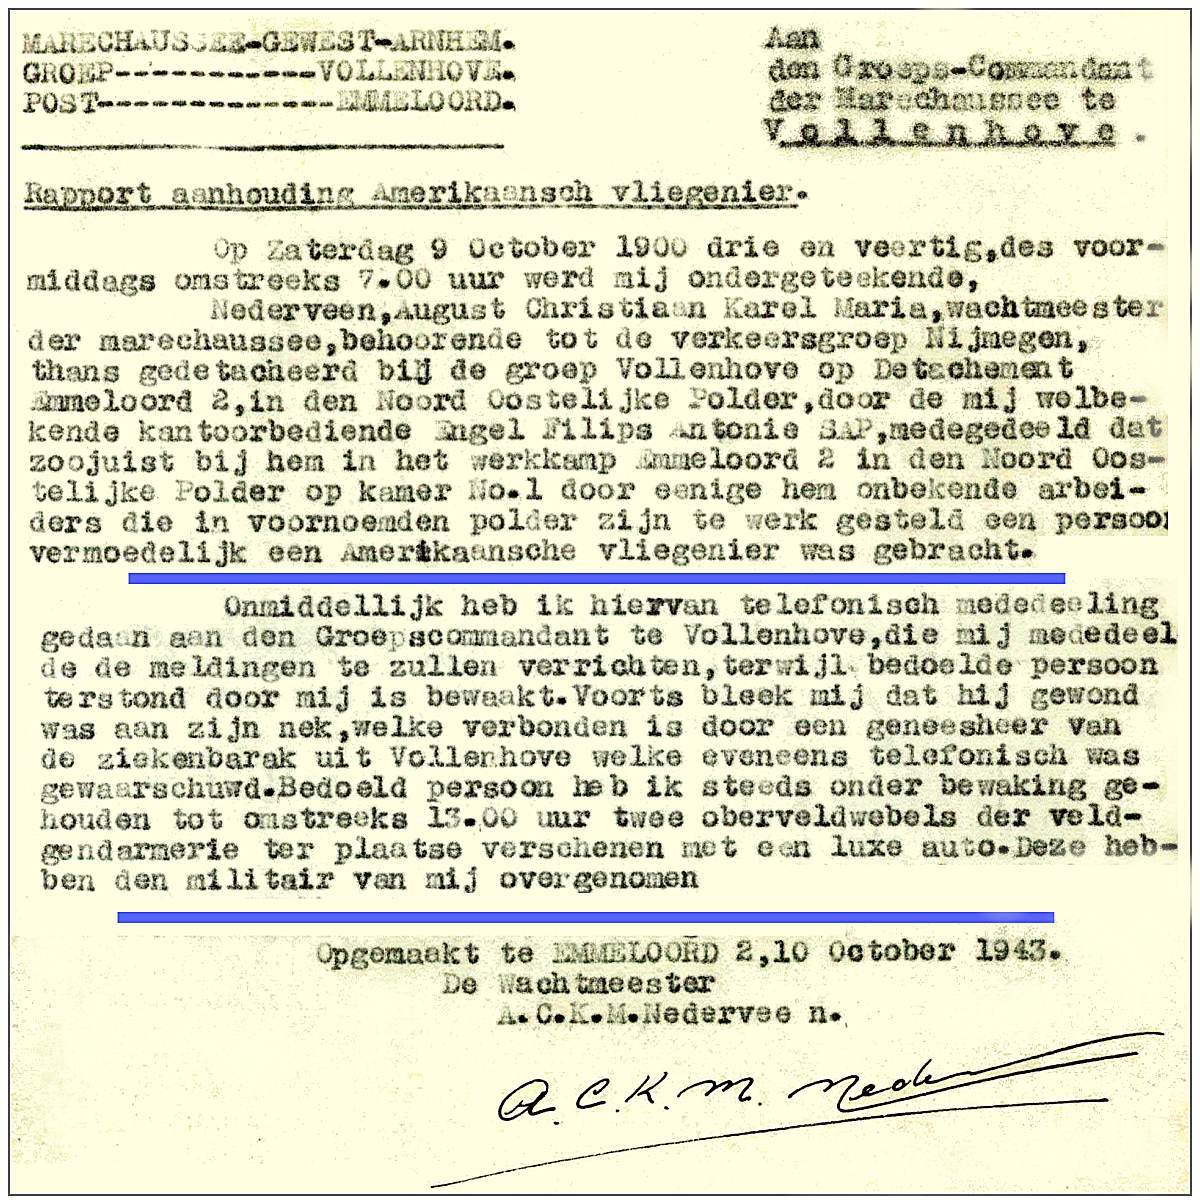 Snippets from police report - Nederveen, Emmeloord 2 - 10 Oct 1943